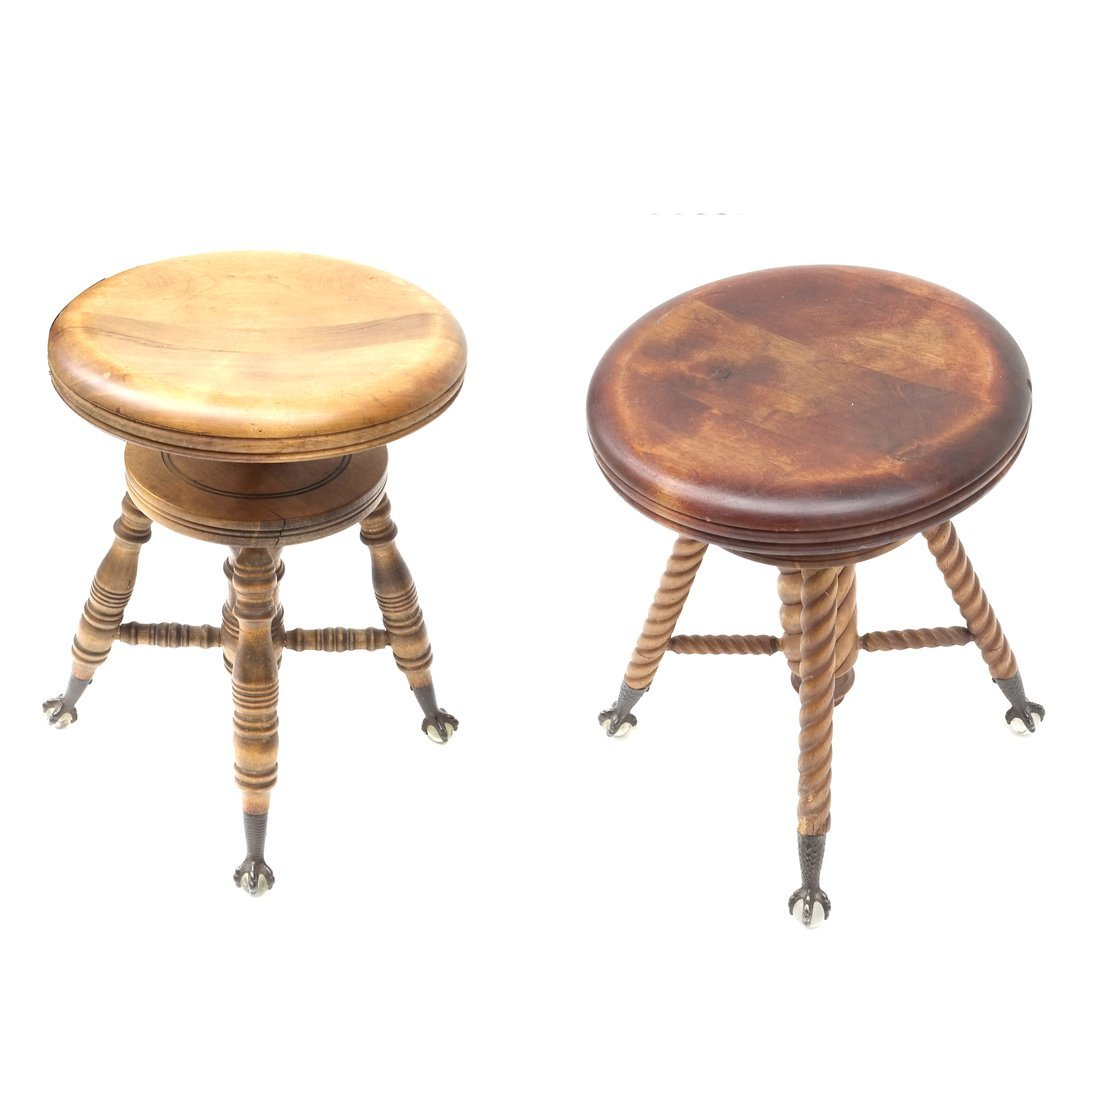 Two Victorian Piano Stools